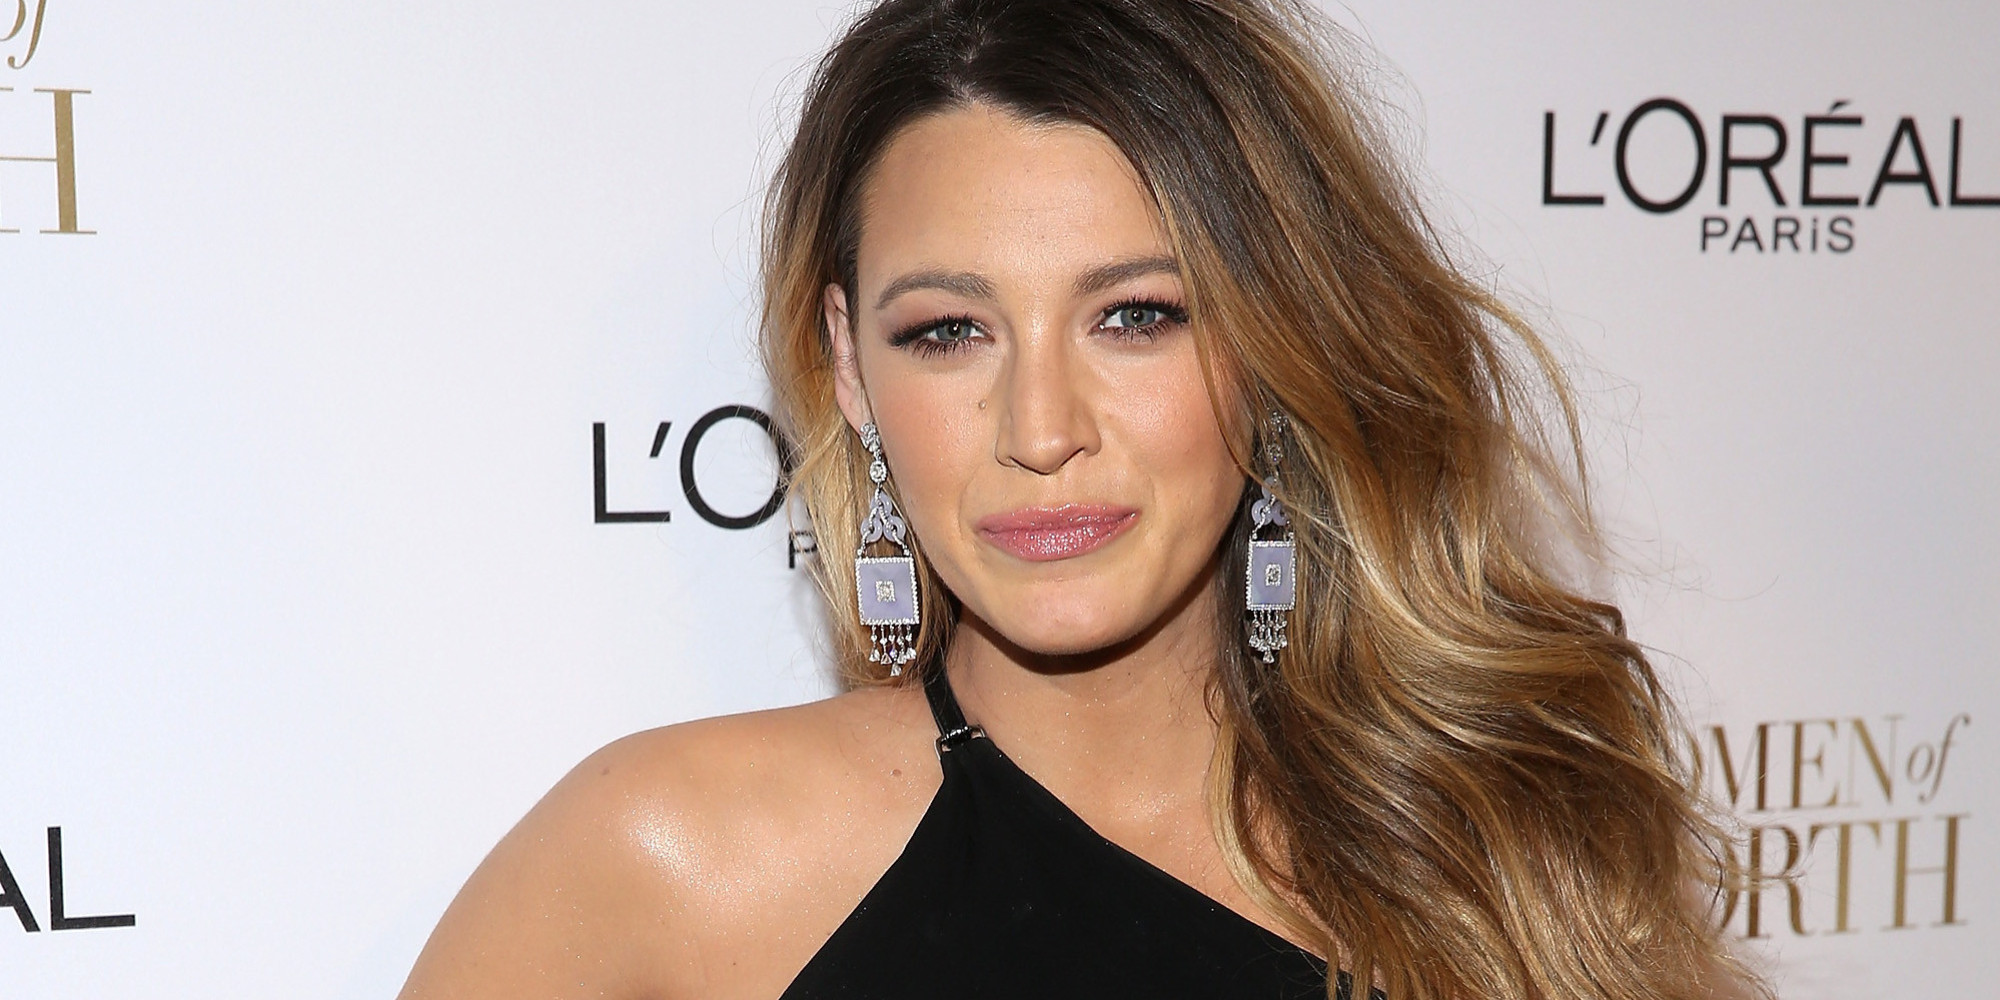 Pregnant Blake Lively Stuns In A Backless Black Dress | The Huffington ... Blake Lively